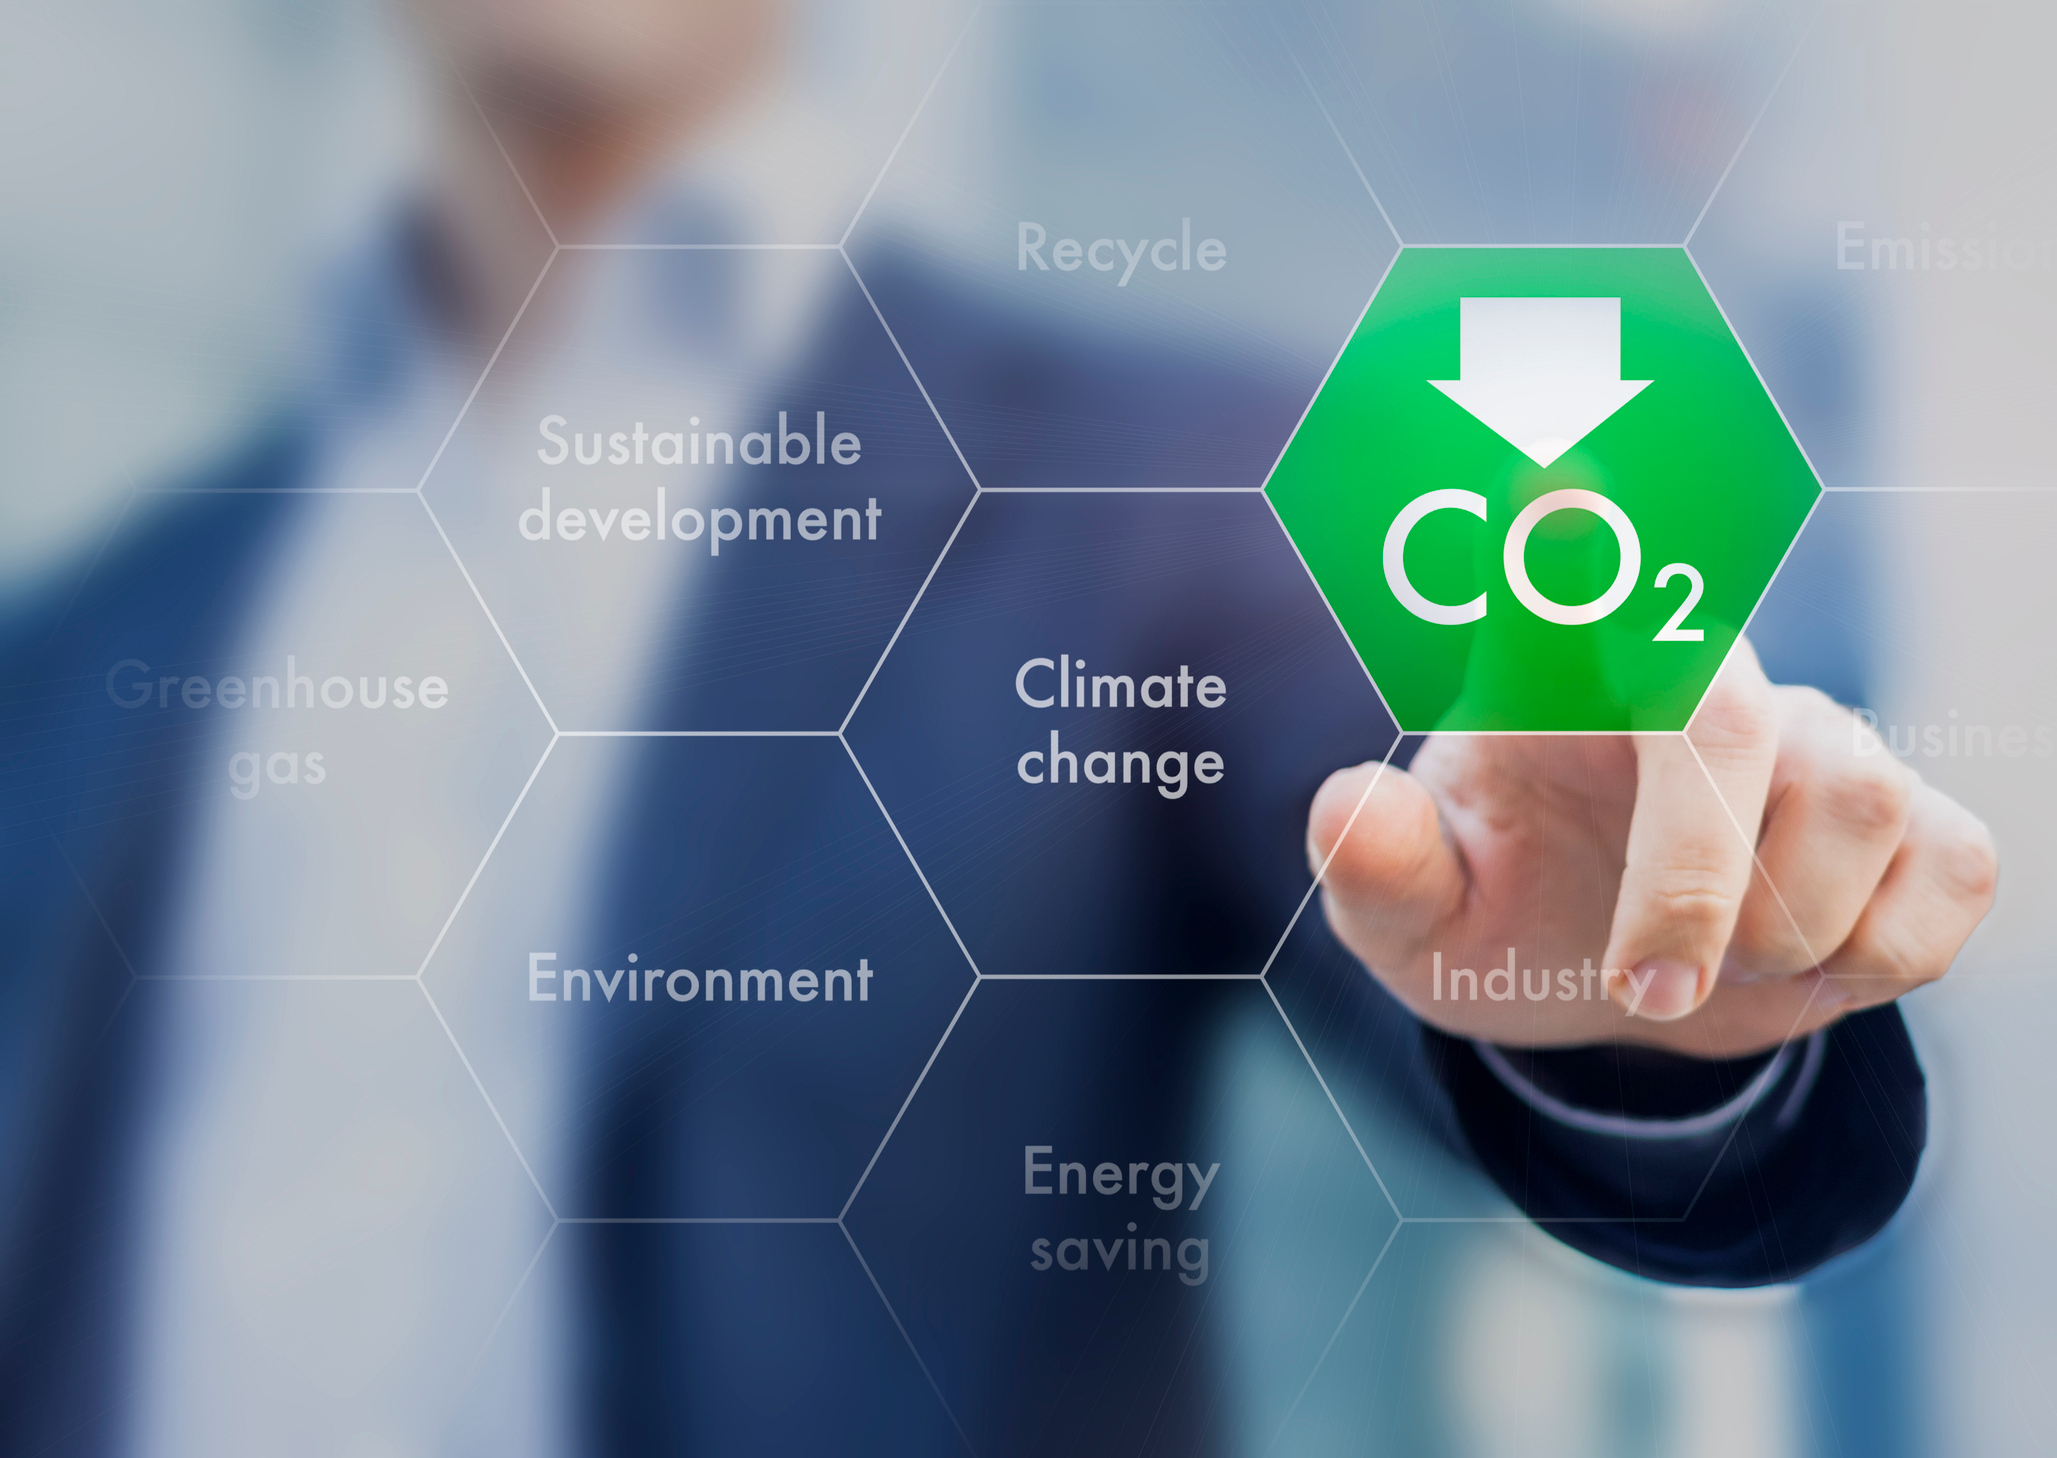 Carbon Capture – a bottomless pit or an important initiative in getting to zero net emissions?